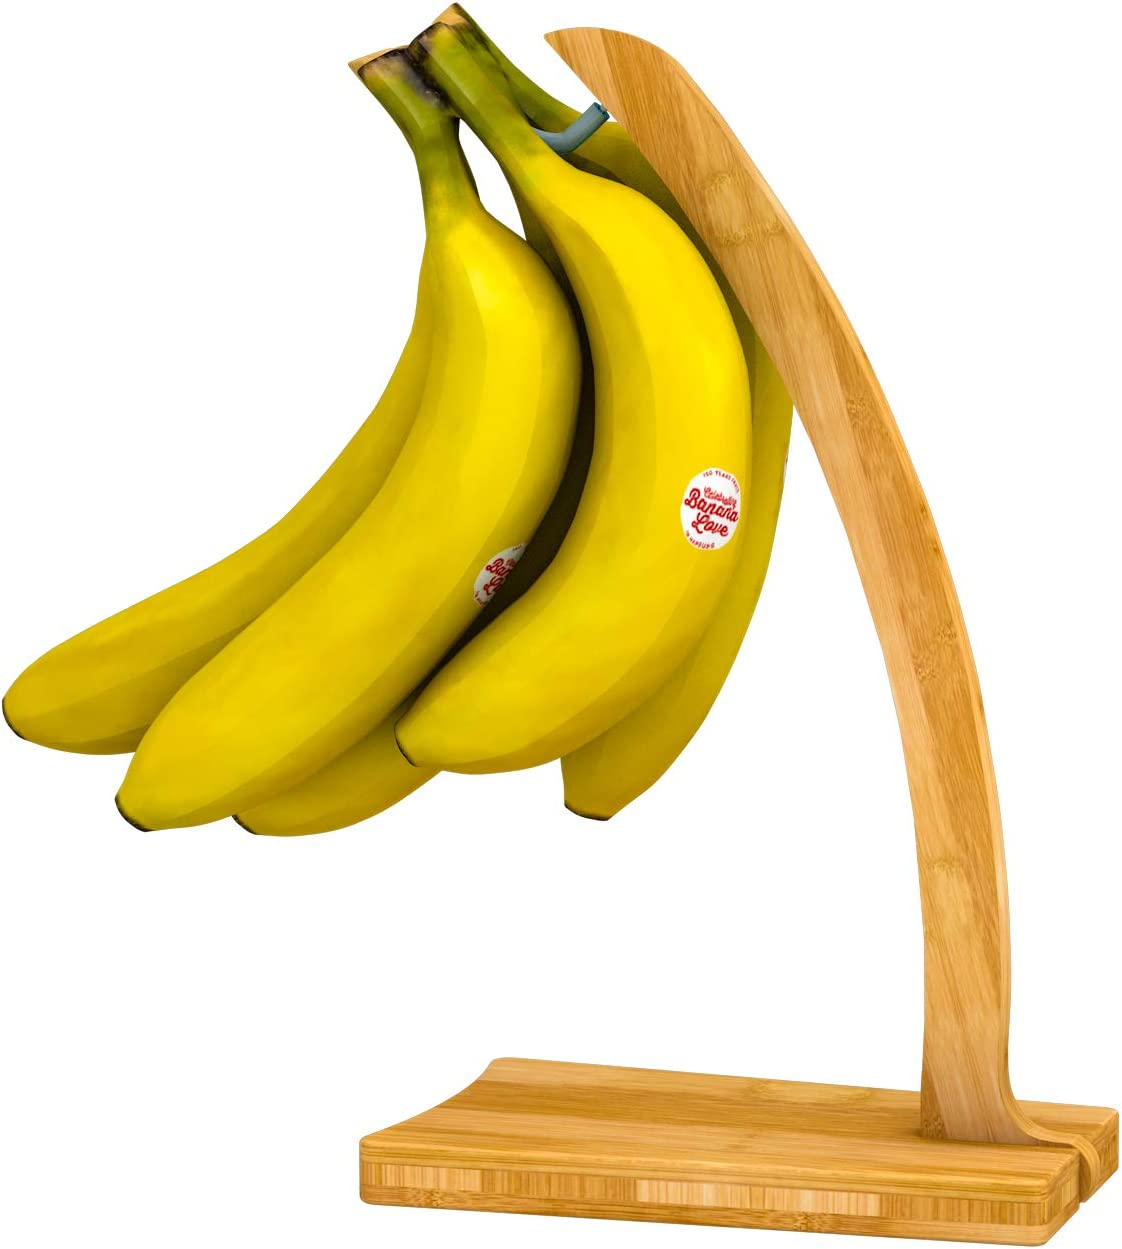 Banana Hanger Bamboo Holder Stand - Sturdy Foldable Display with Hook for Home or Bar, Countertop Food Storage